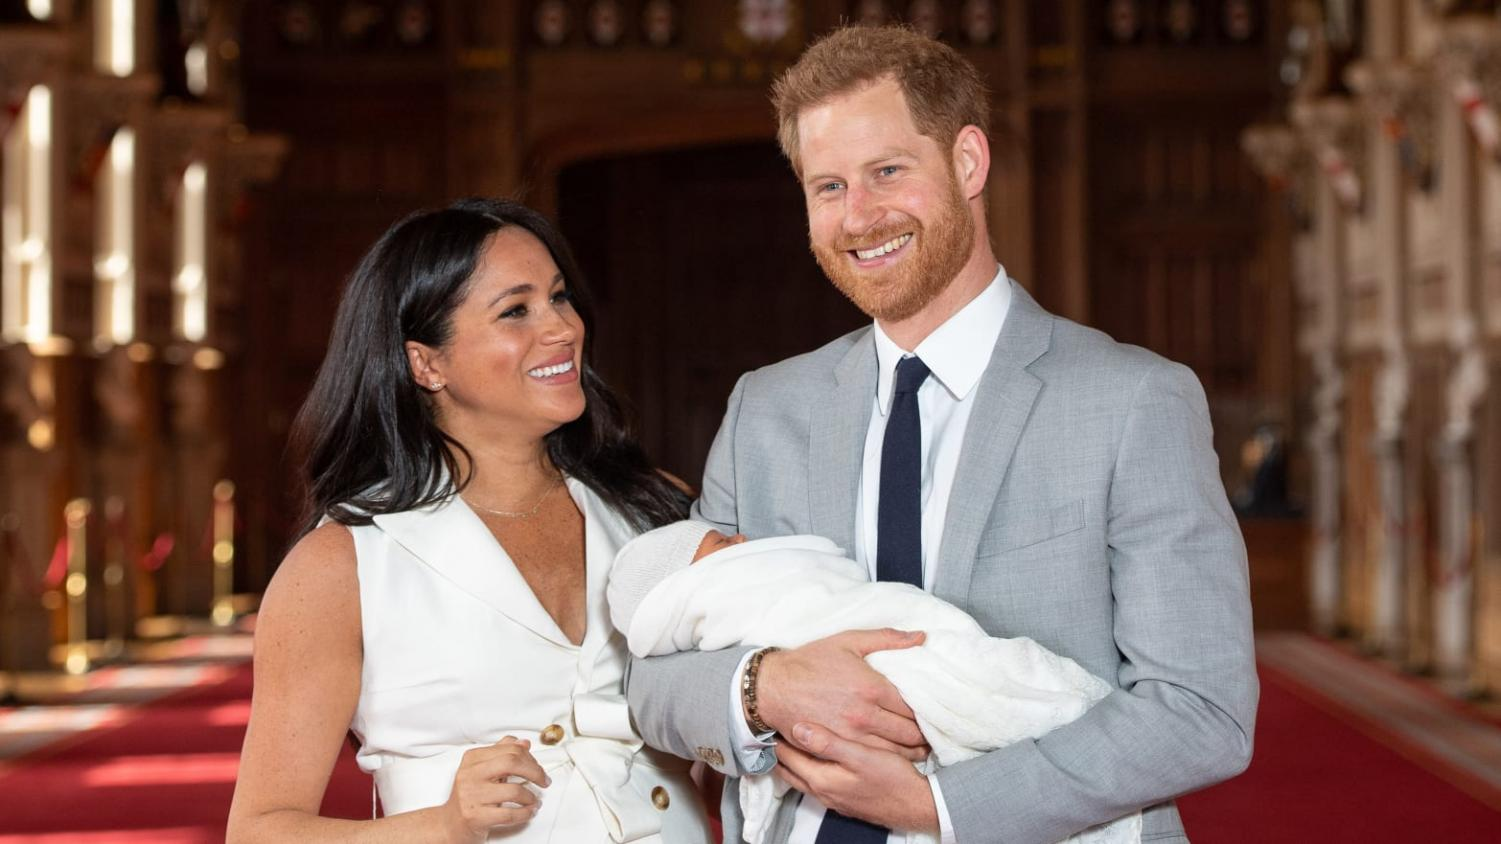 Everything You Need to Know About the Royal Baby